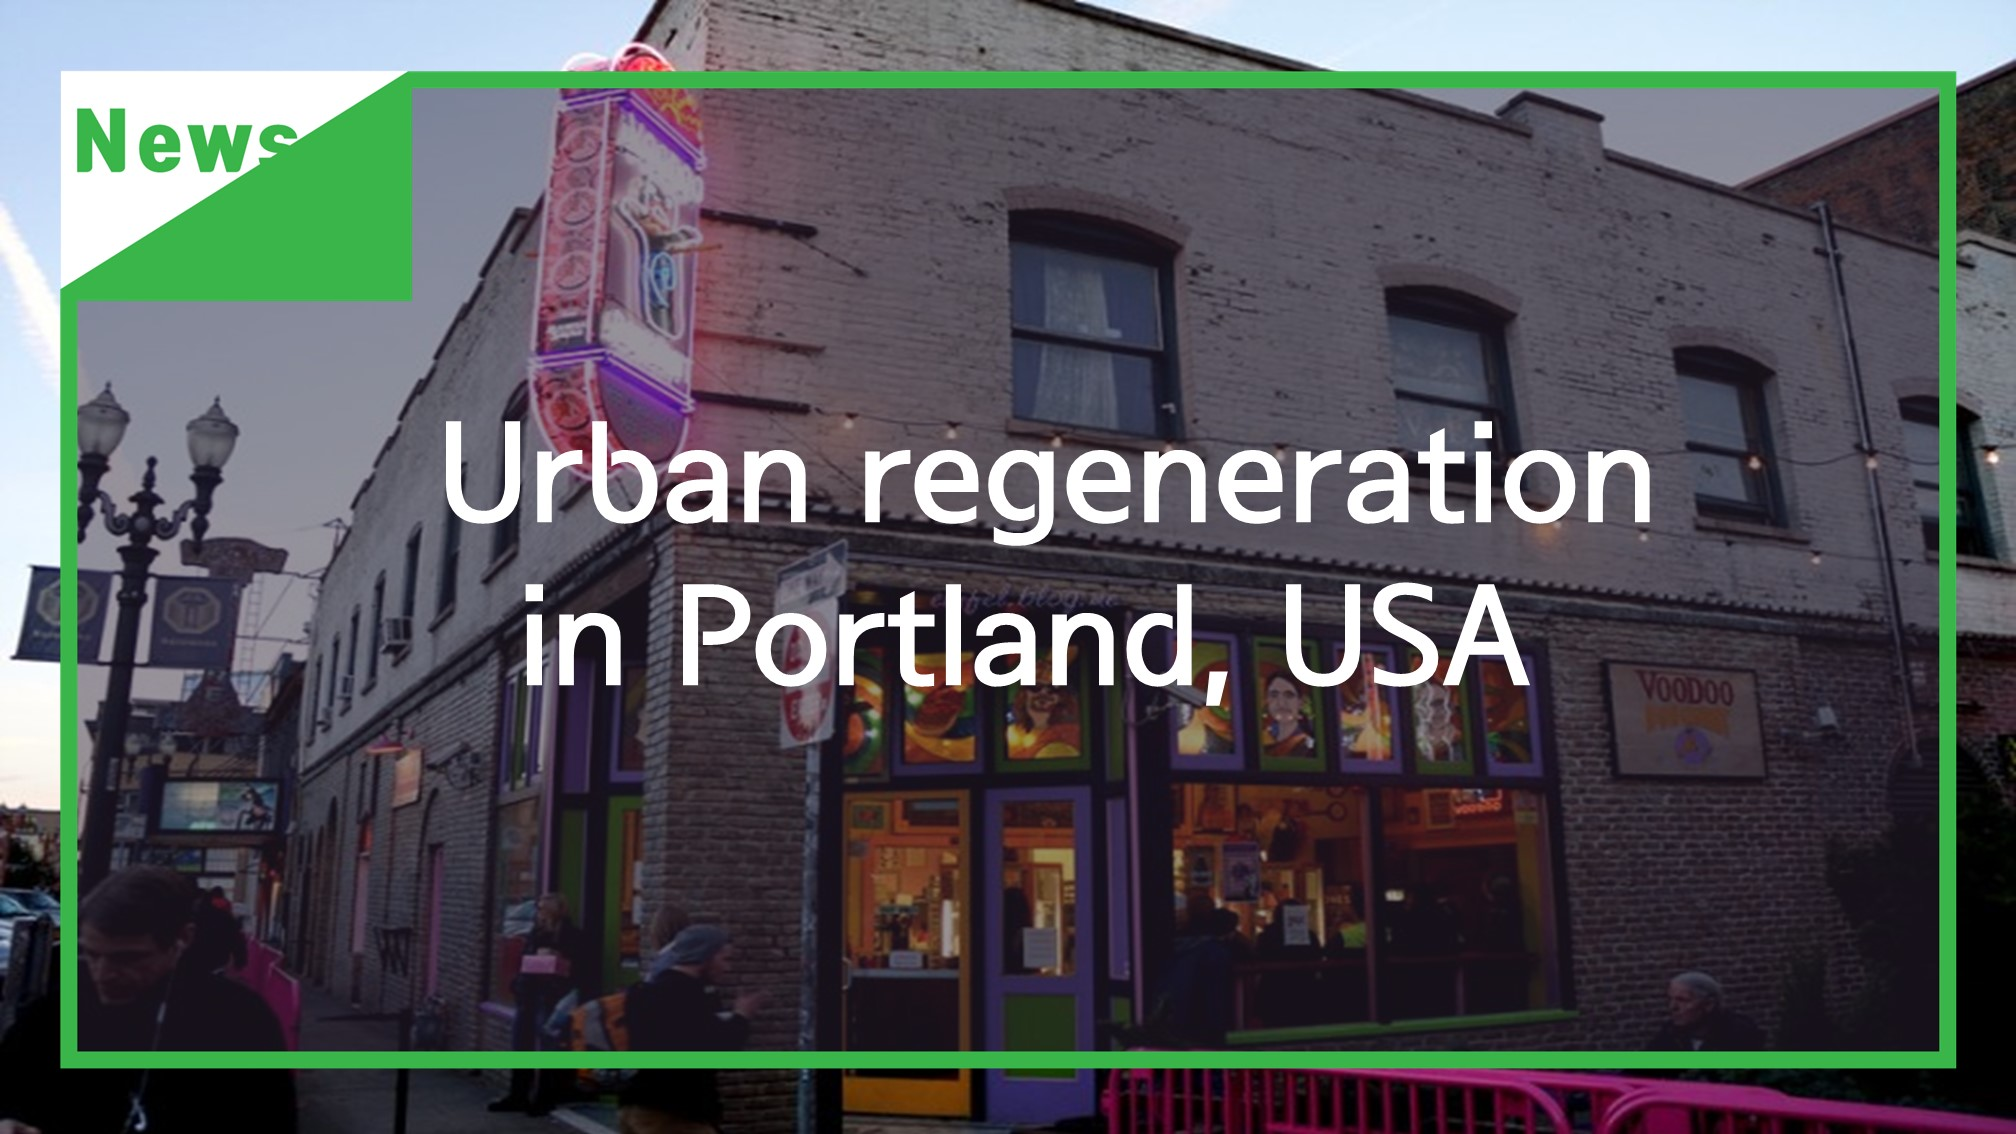 [News] Urban regeneration in Portland